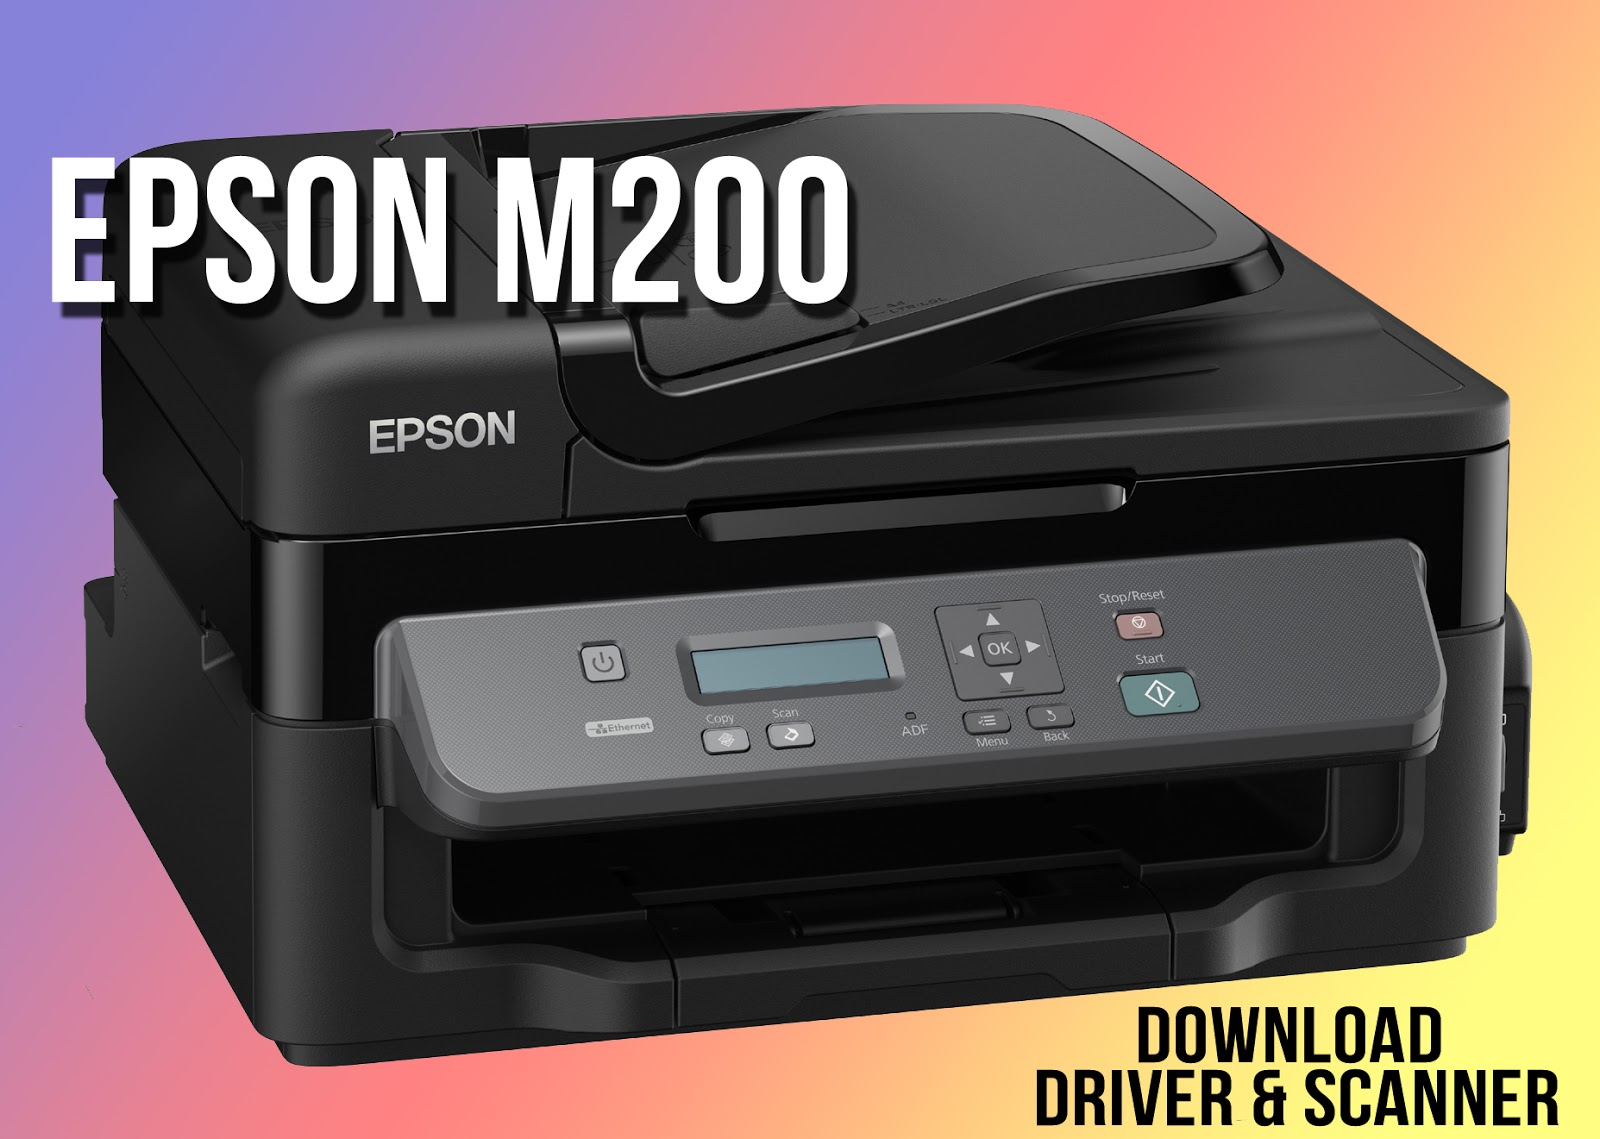 Epson M200 Printer Driver Download Windows 7